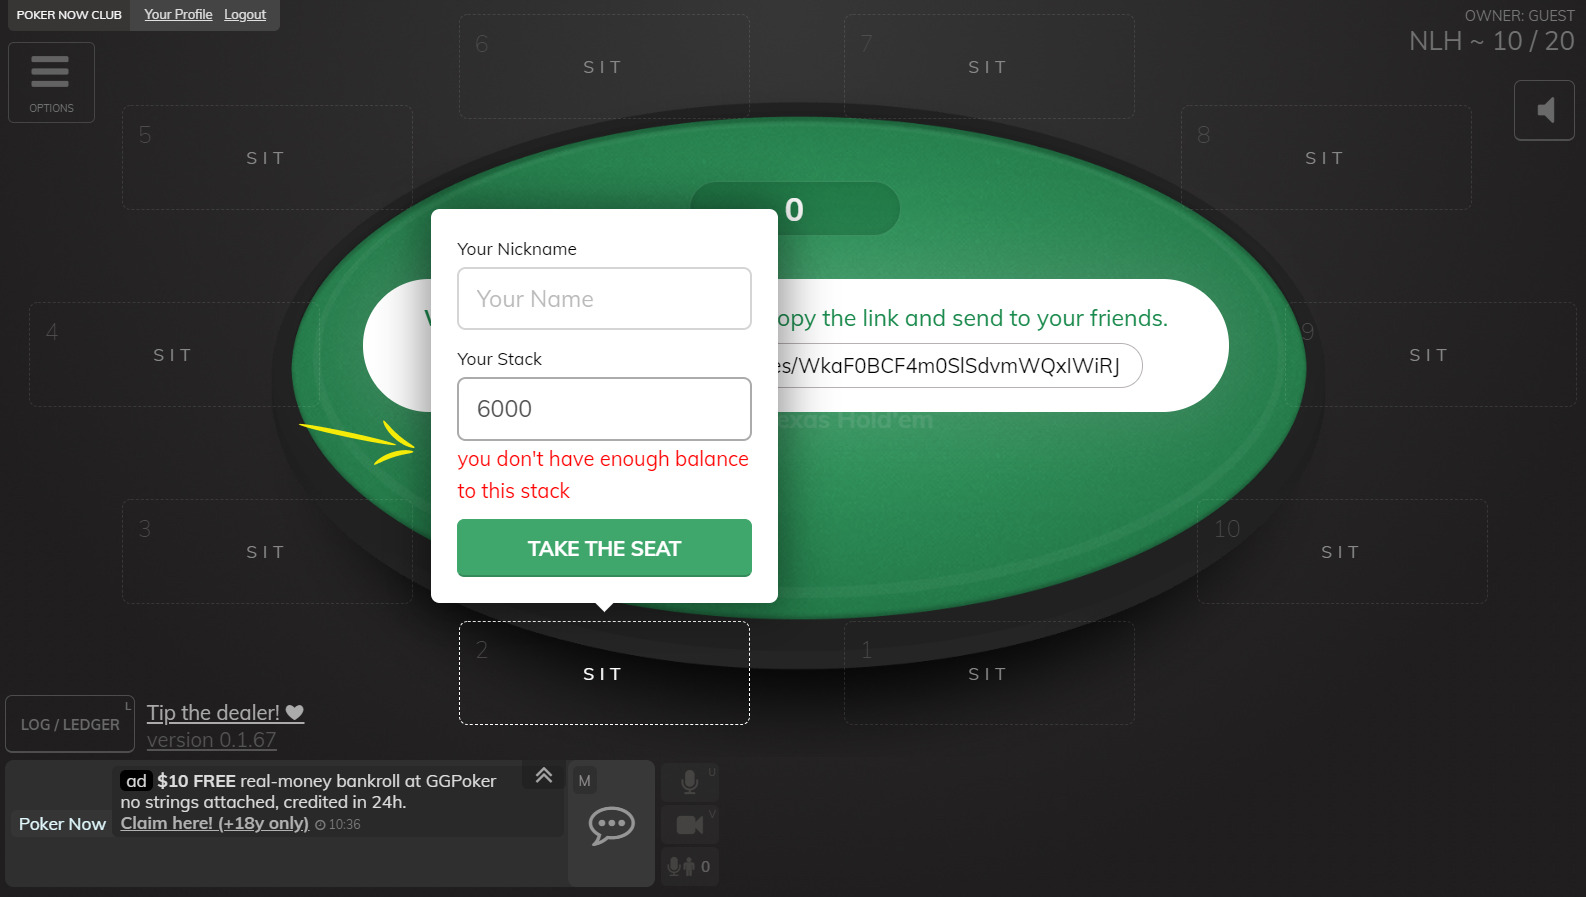 Not being allowed to play on Poker Now because missing chips on Discord Server